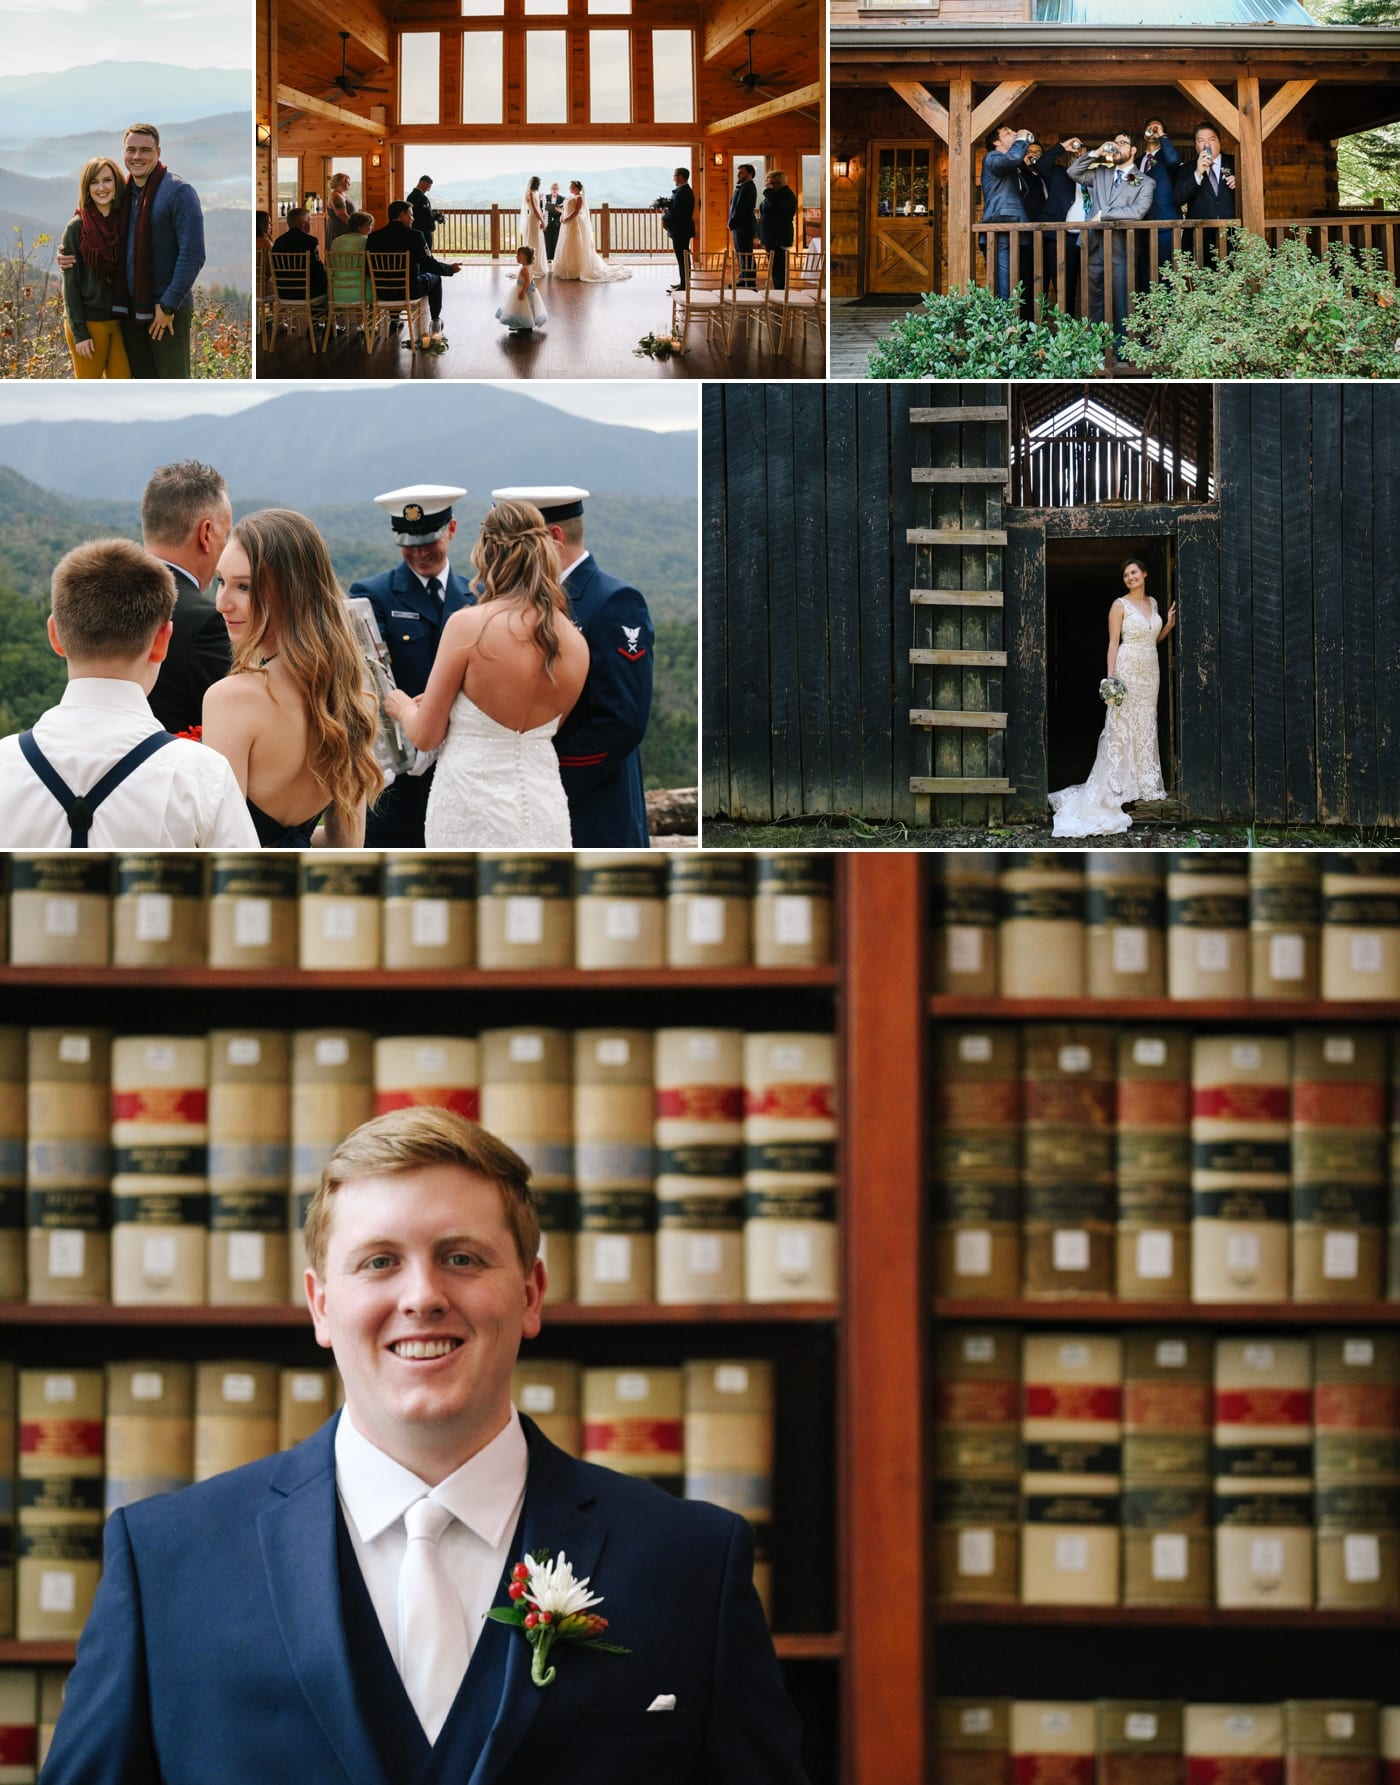 Knoxville, TN wedding day